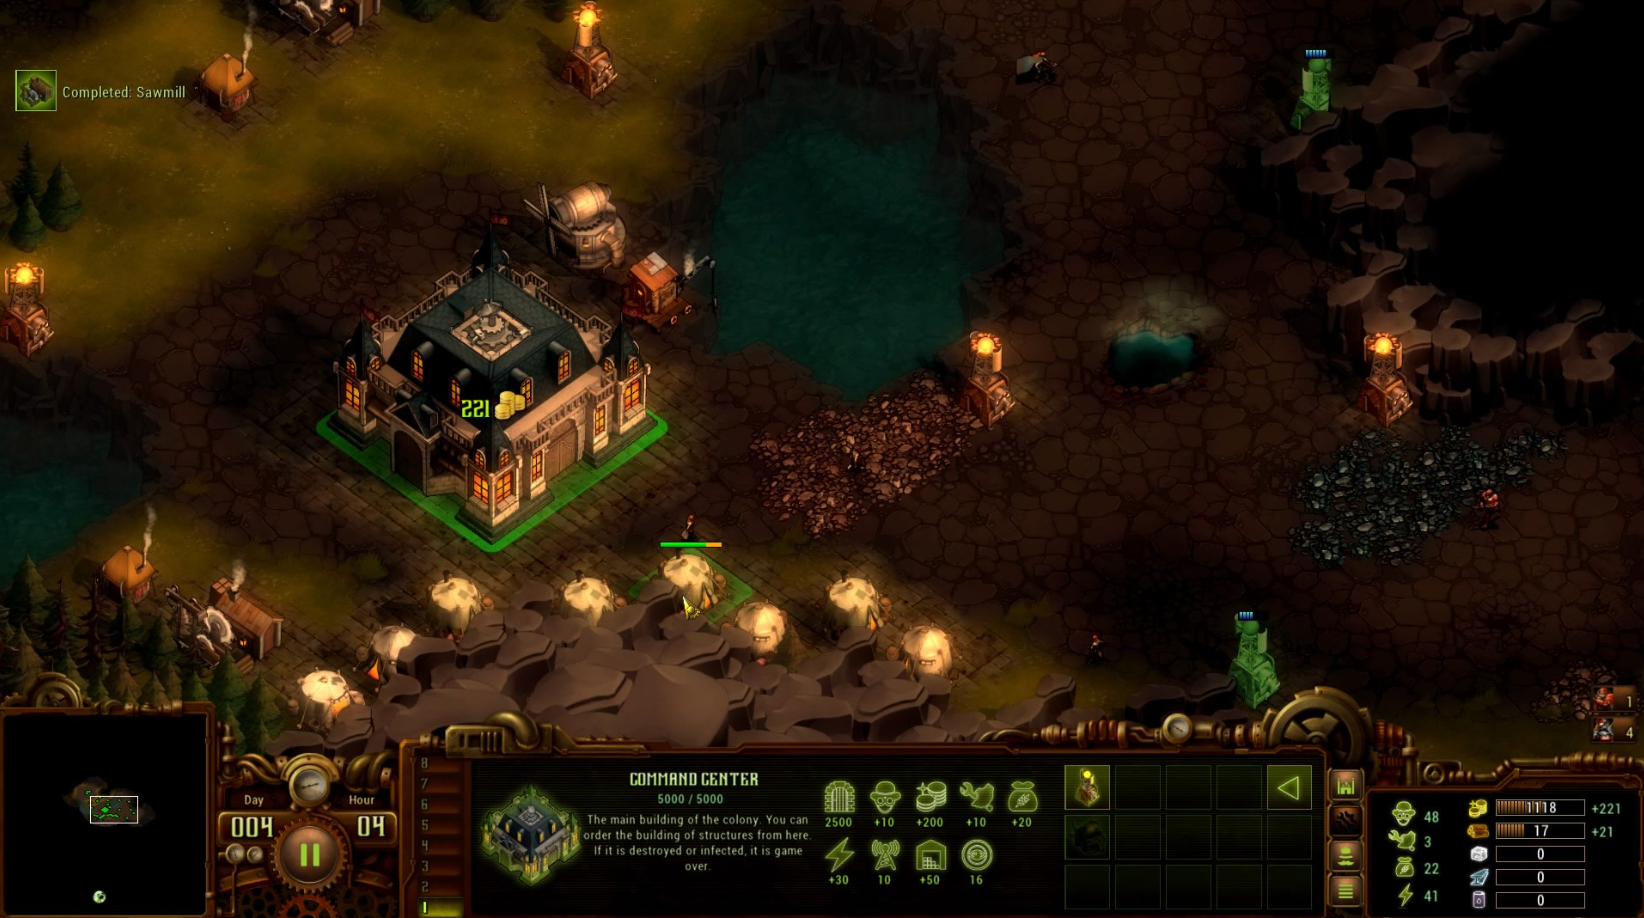 They are Billions PS4 RTS gameplay